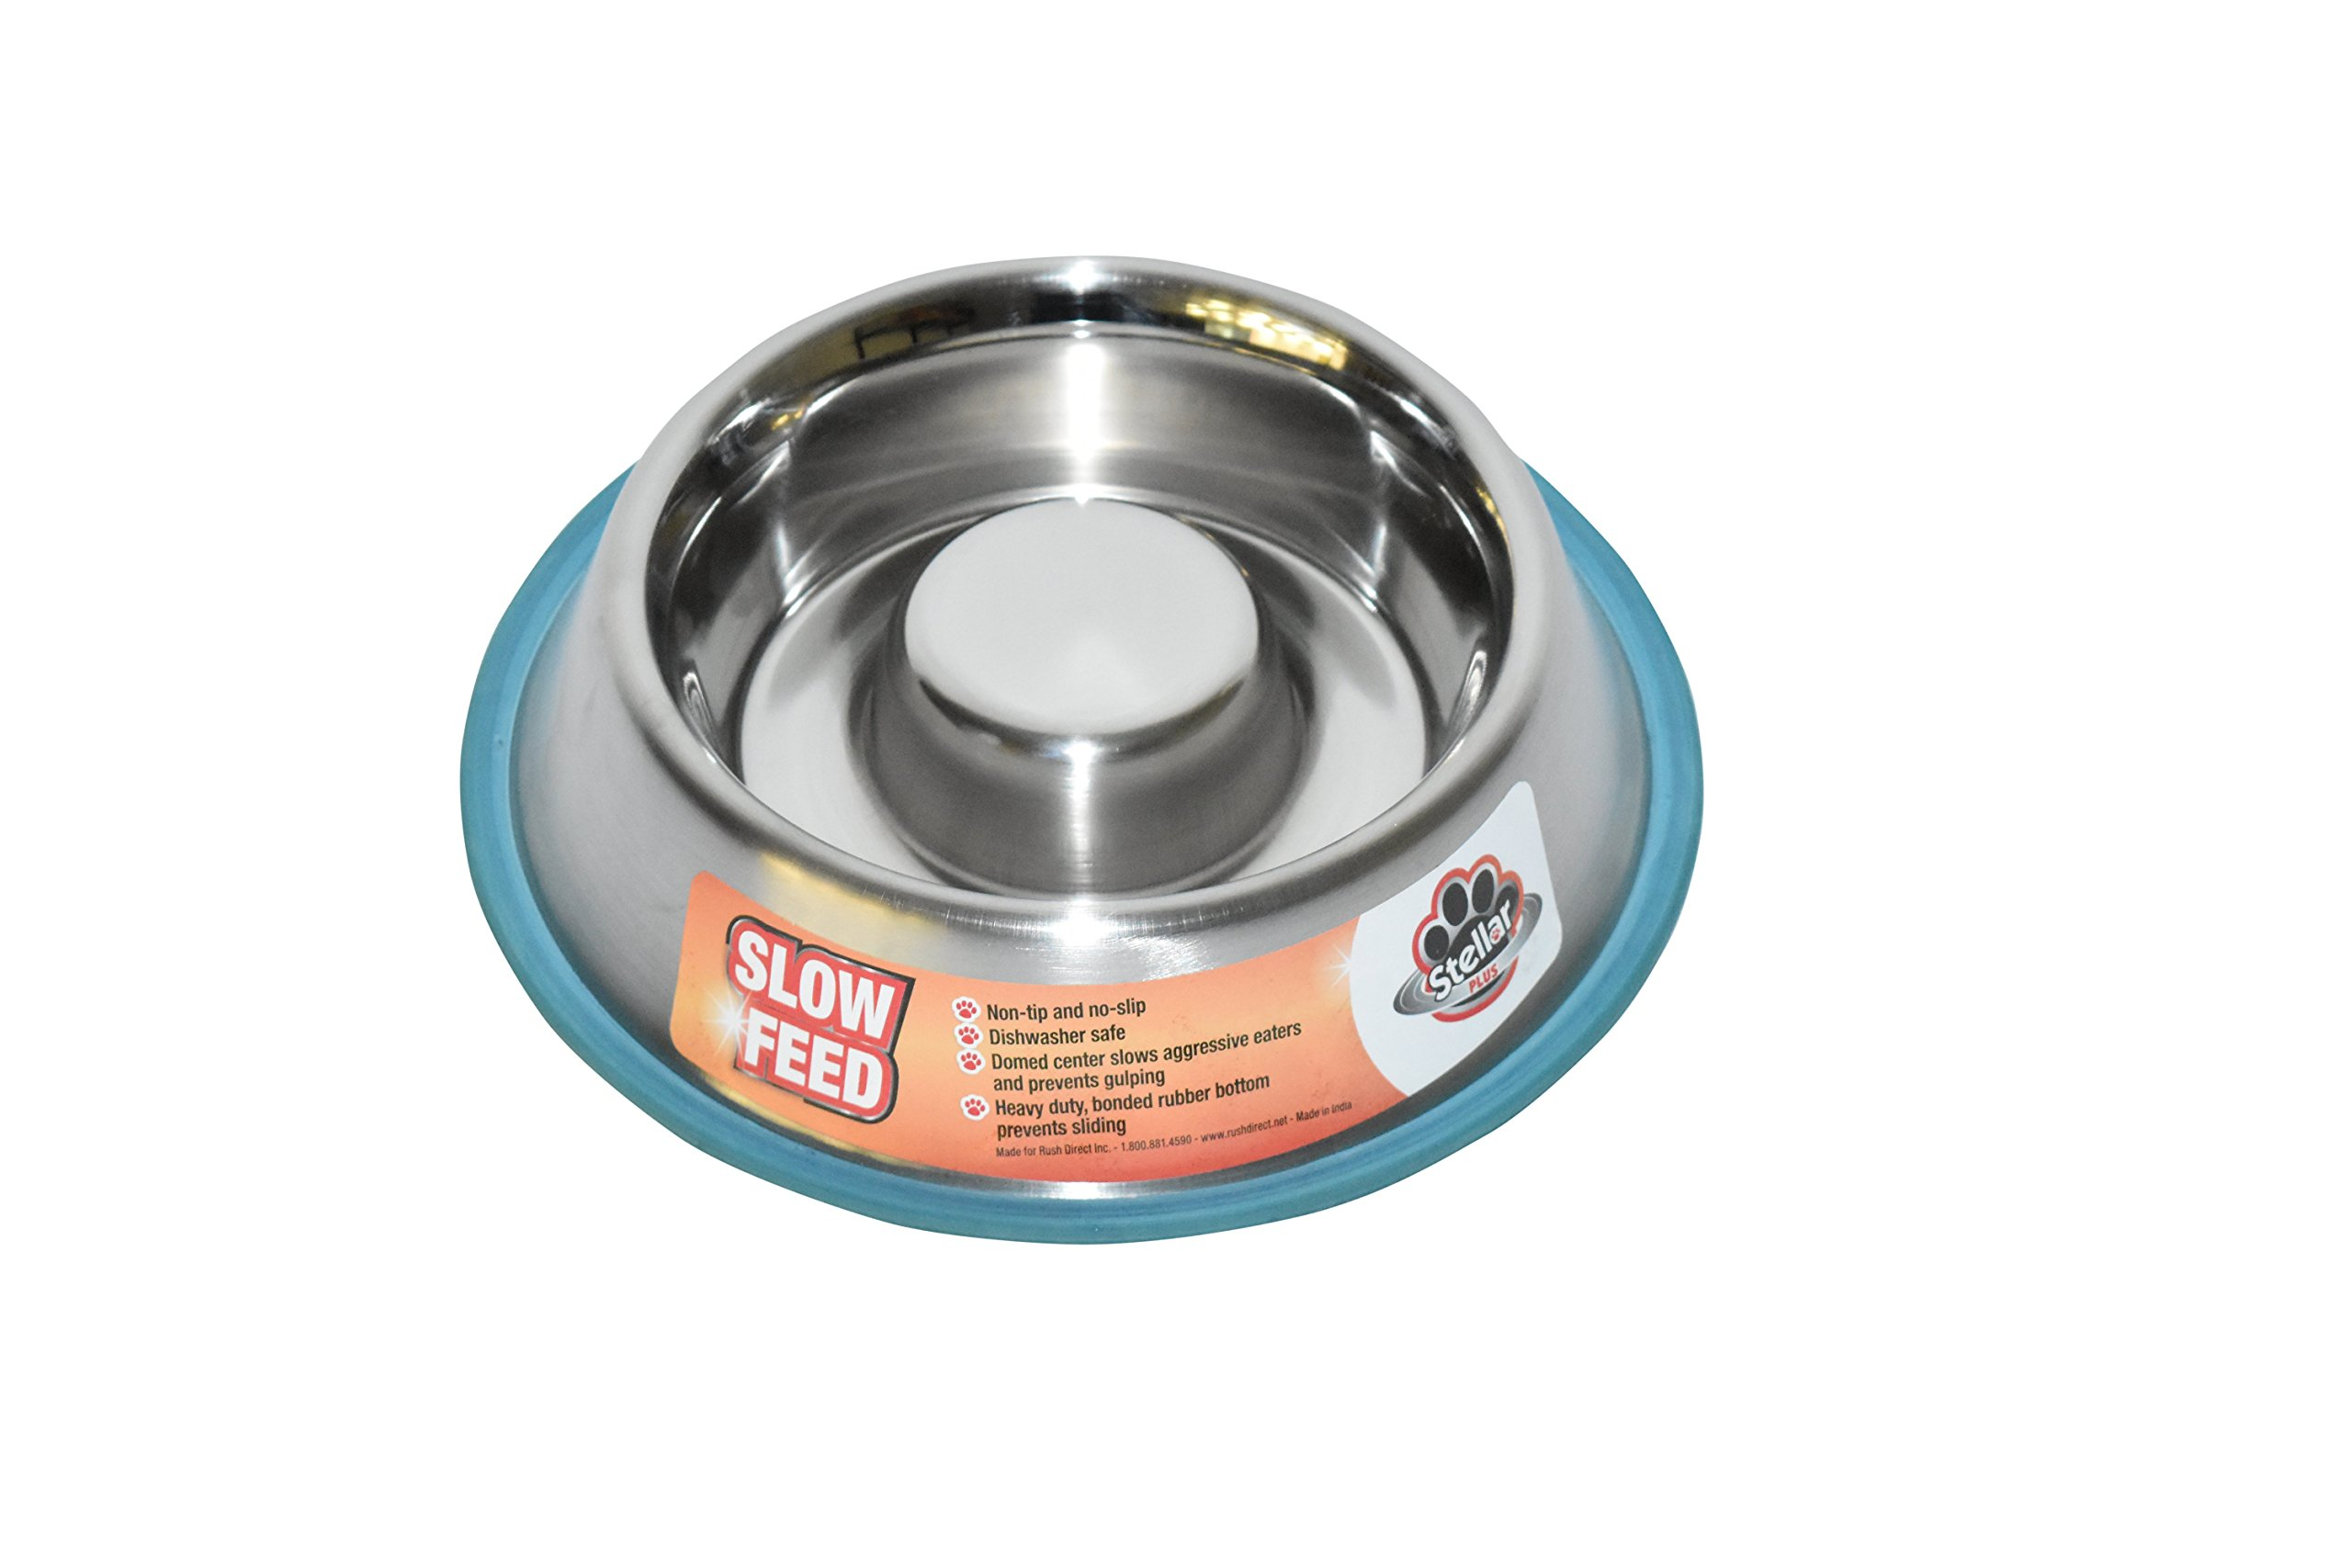 Stellar Bowls Health Care Slow Feeding Dish 0.60 mm Thickness with 100% Silicon Bonded Rubber 16oz by Stellar Bowls